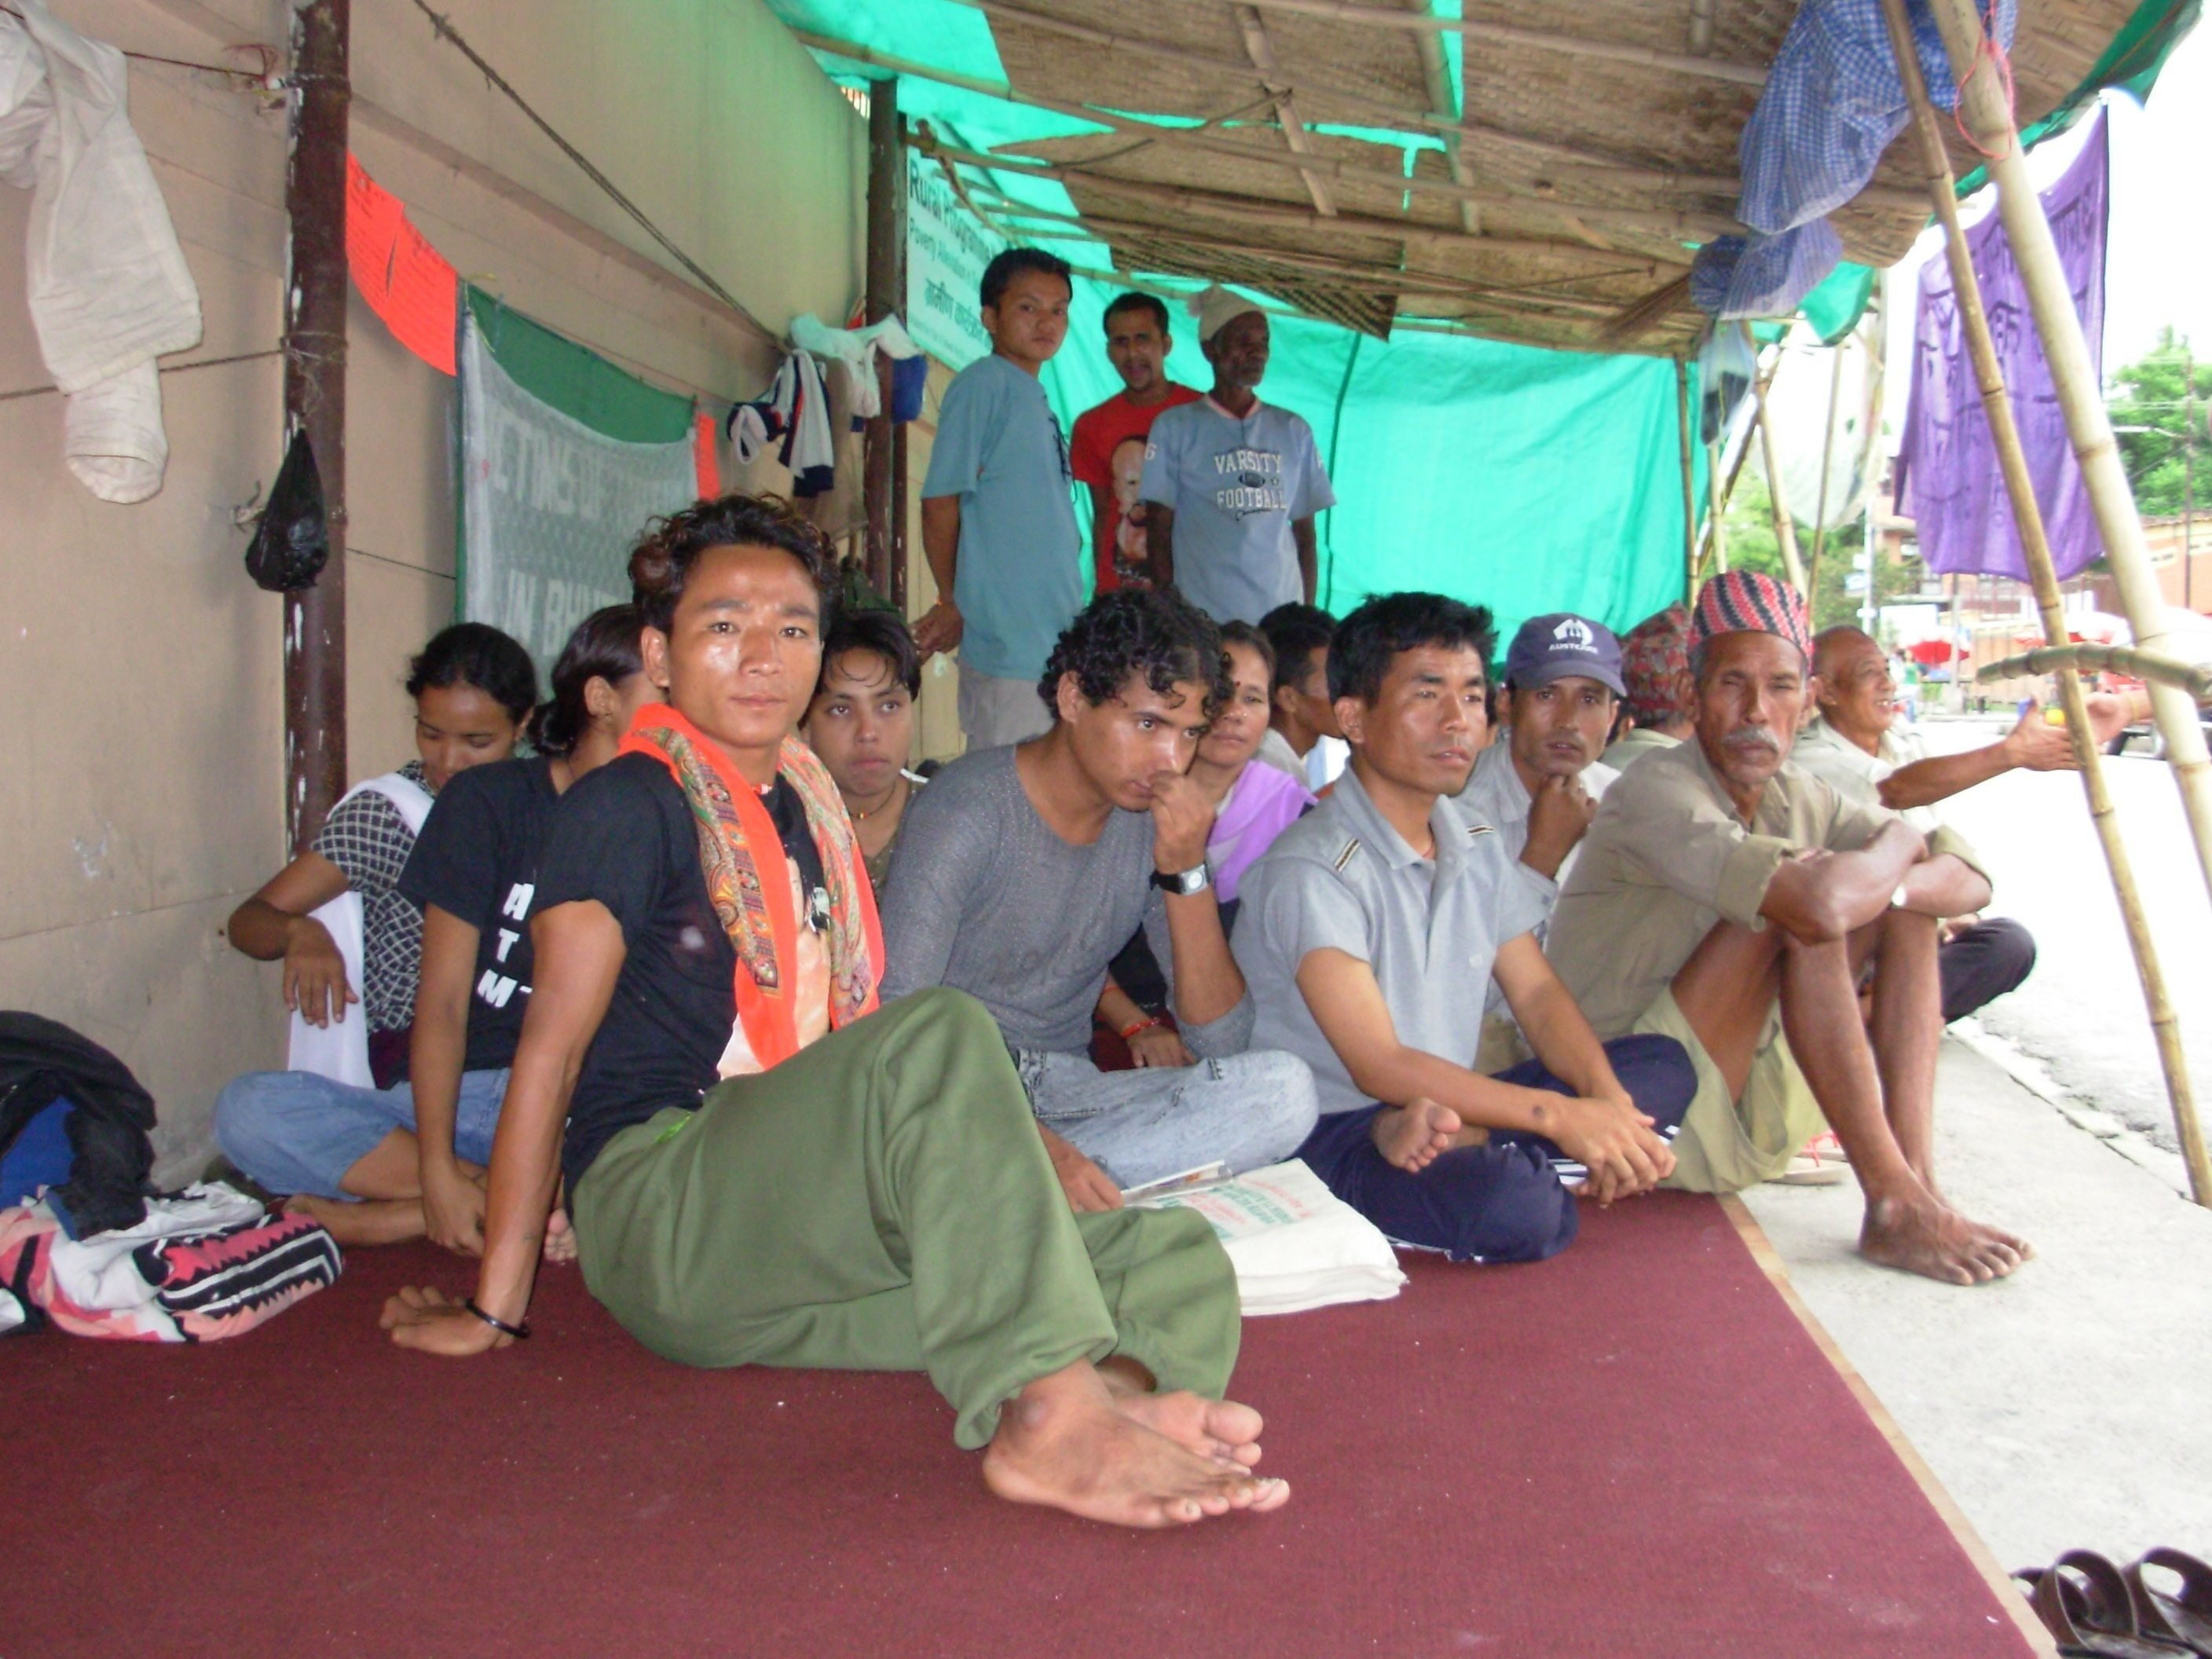 irin bhutanese refugees find new life beyond the camps